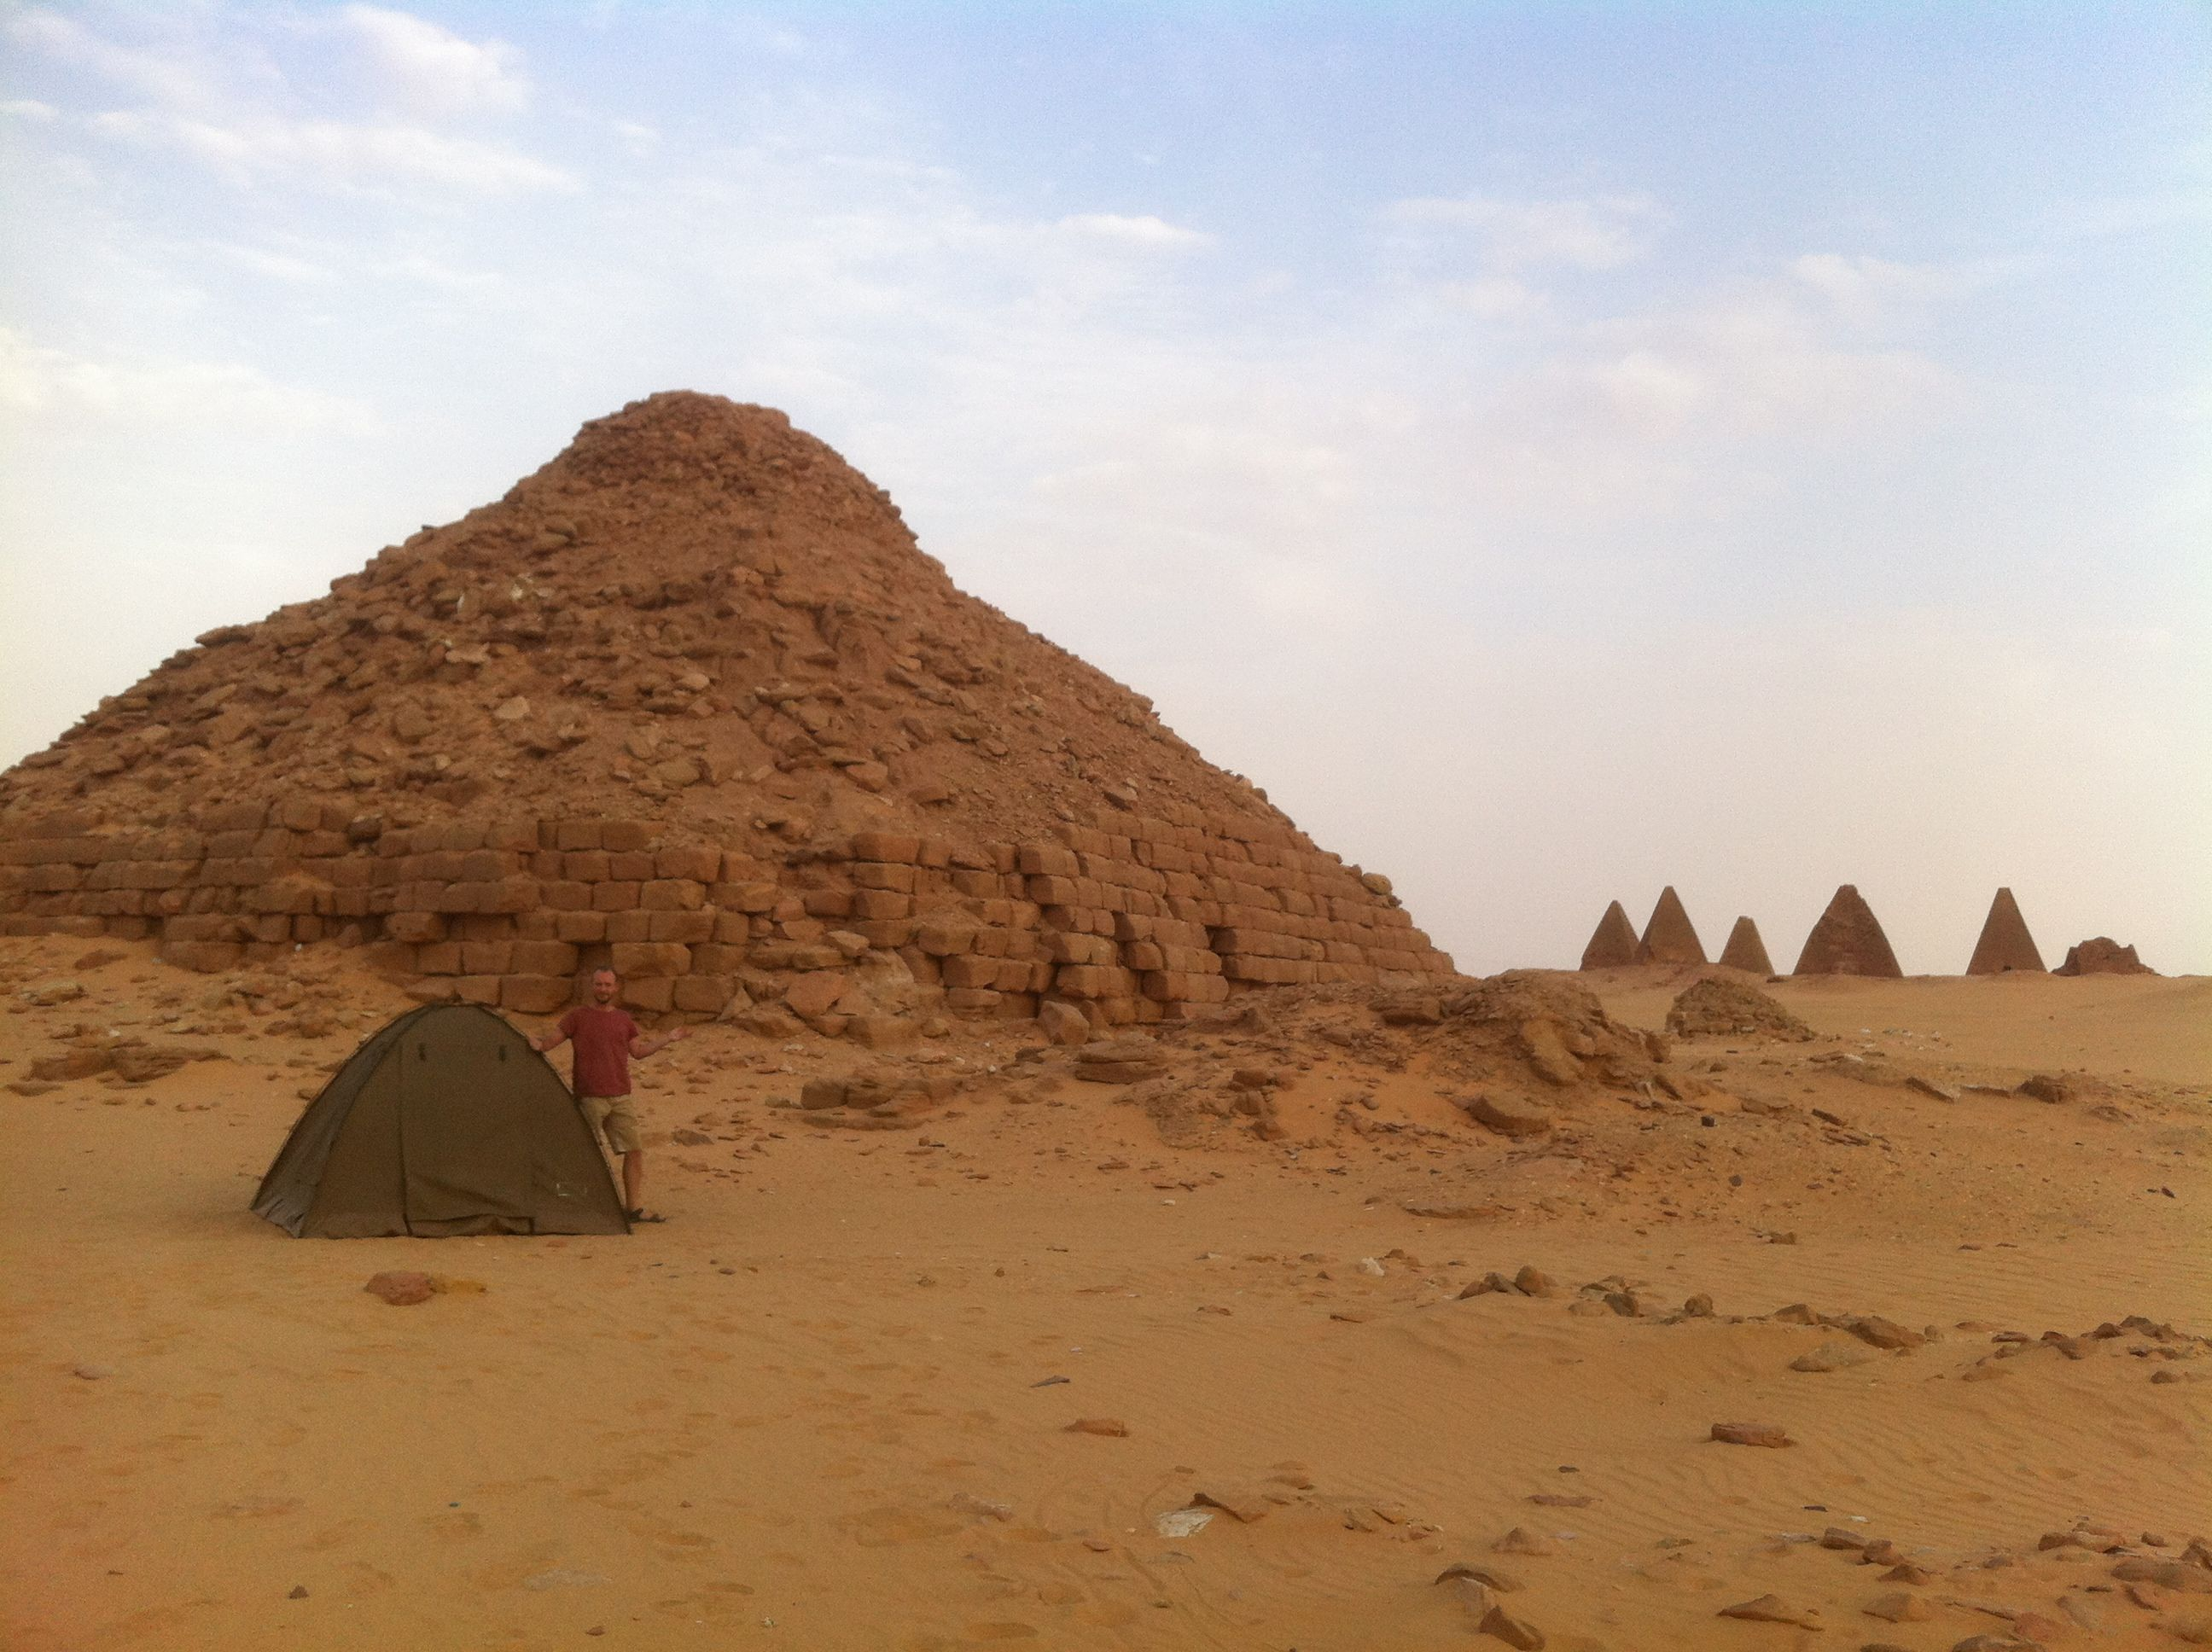 Camping by the pyramids in Sudan  http://www.fortuneglorykid.com/sudan-camping-in-the-kingdom-of-kush/